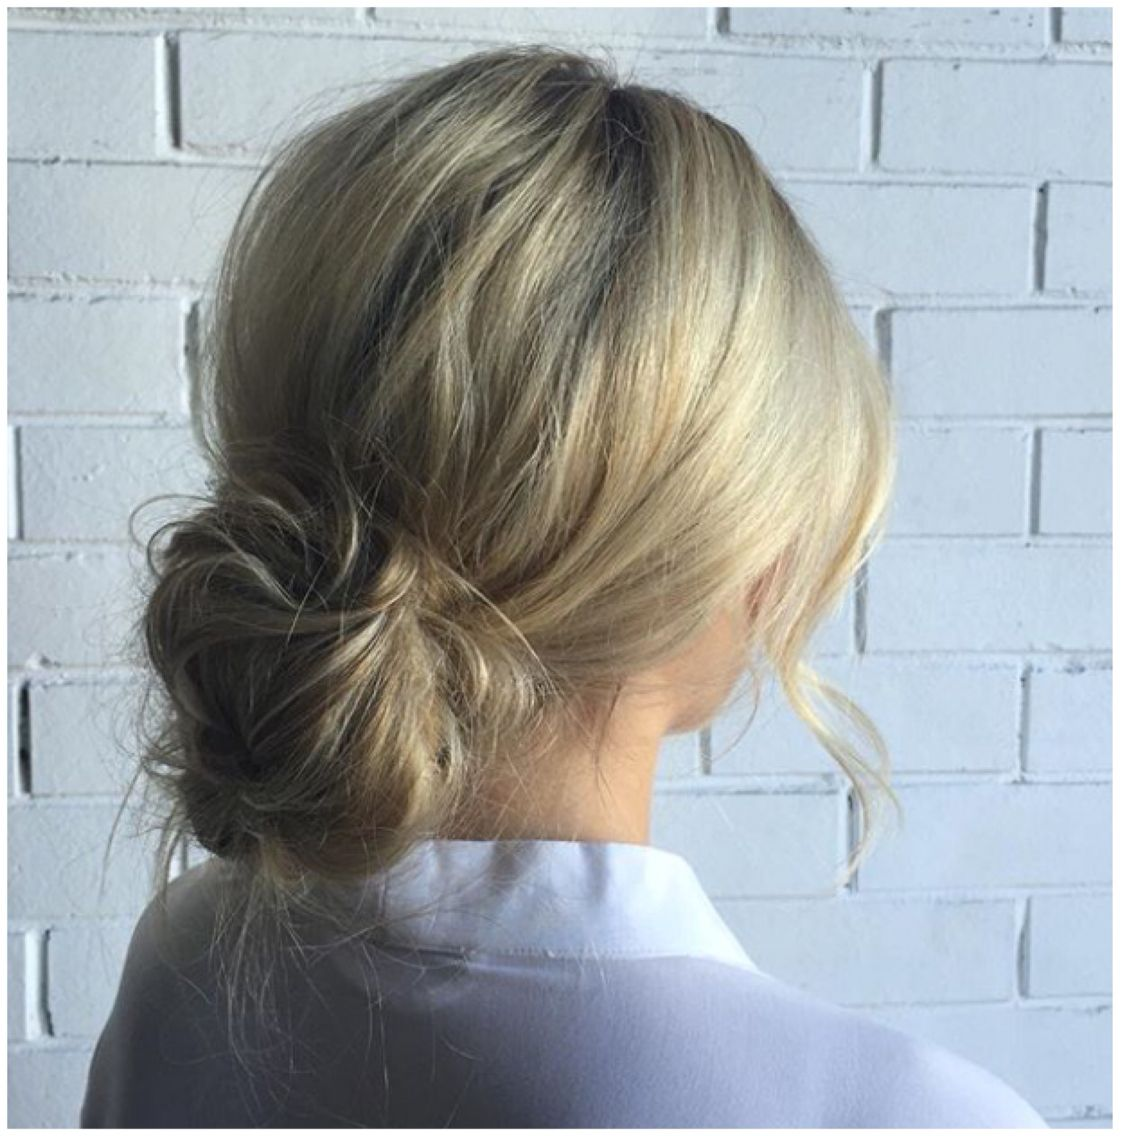 Back View Of Low Loose Bun Short Hair Bun Low Bun Hairstyles Messy Hairstyles